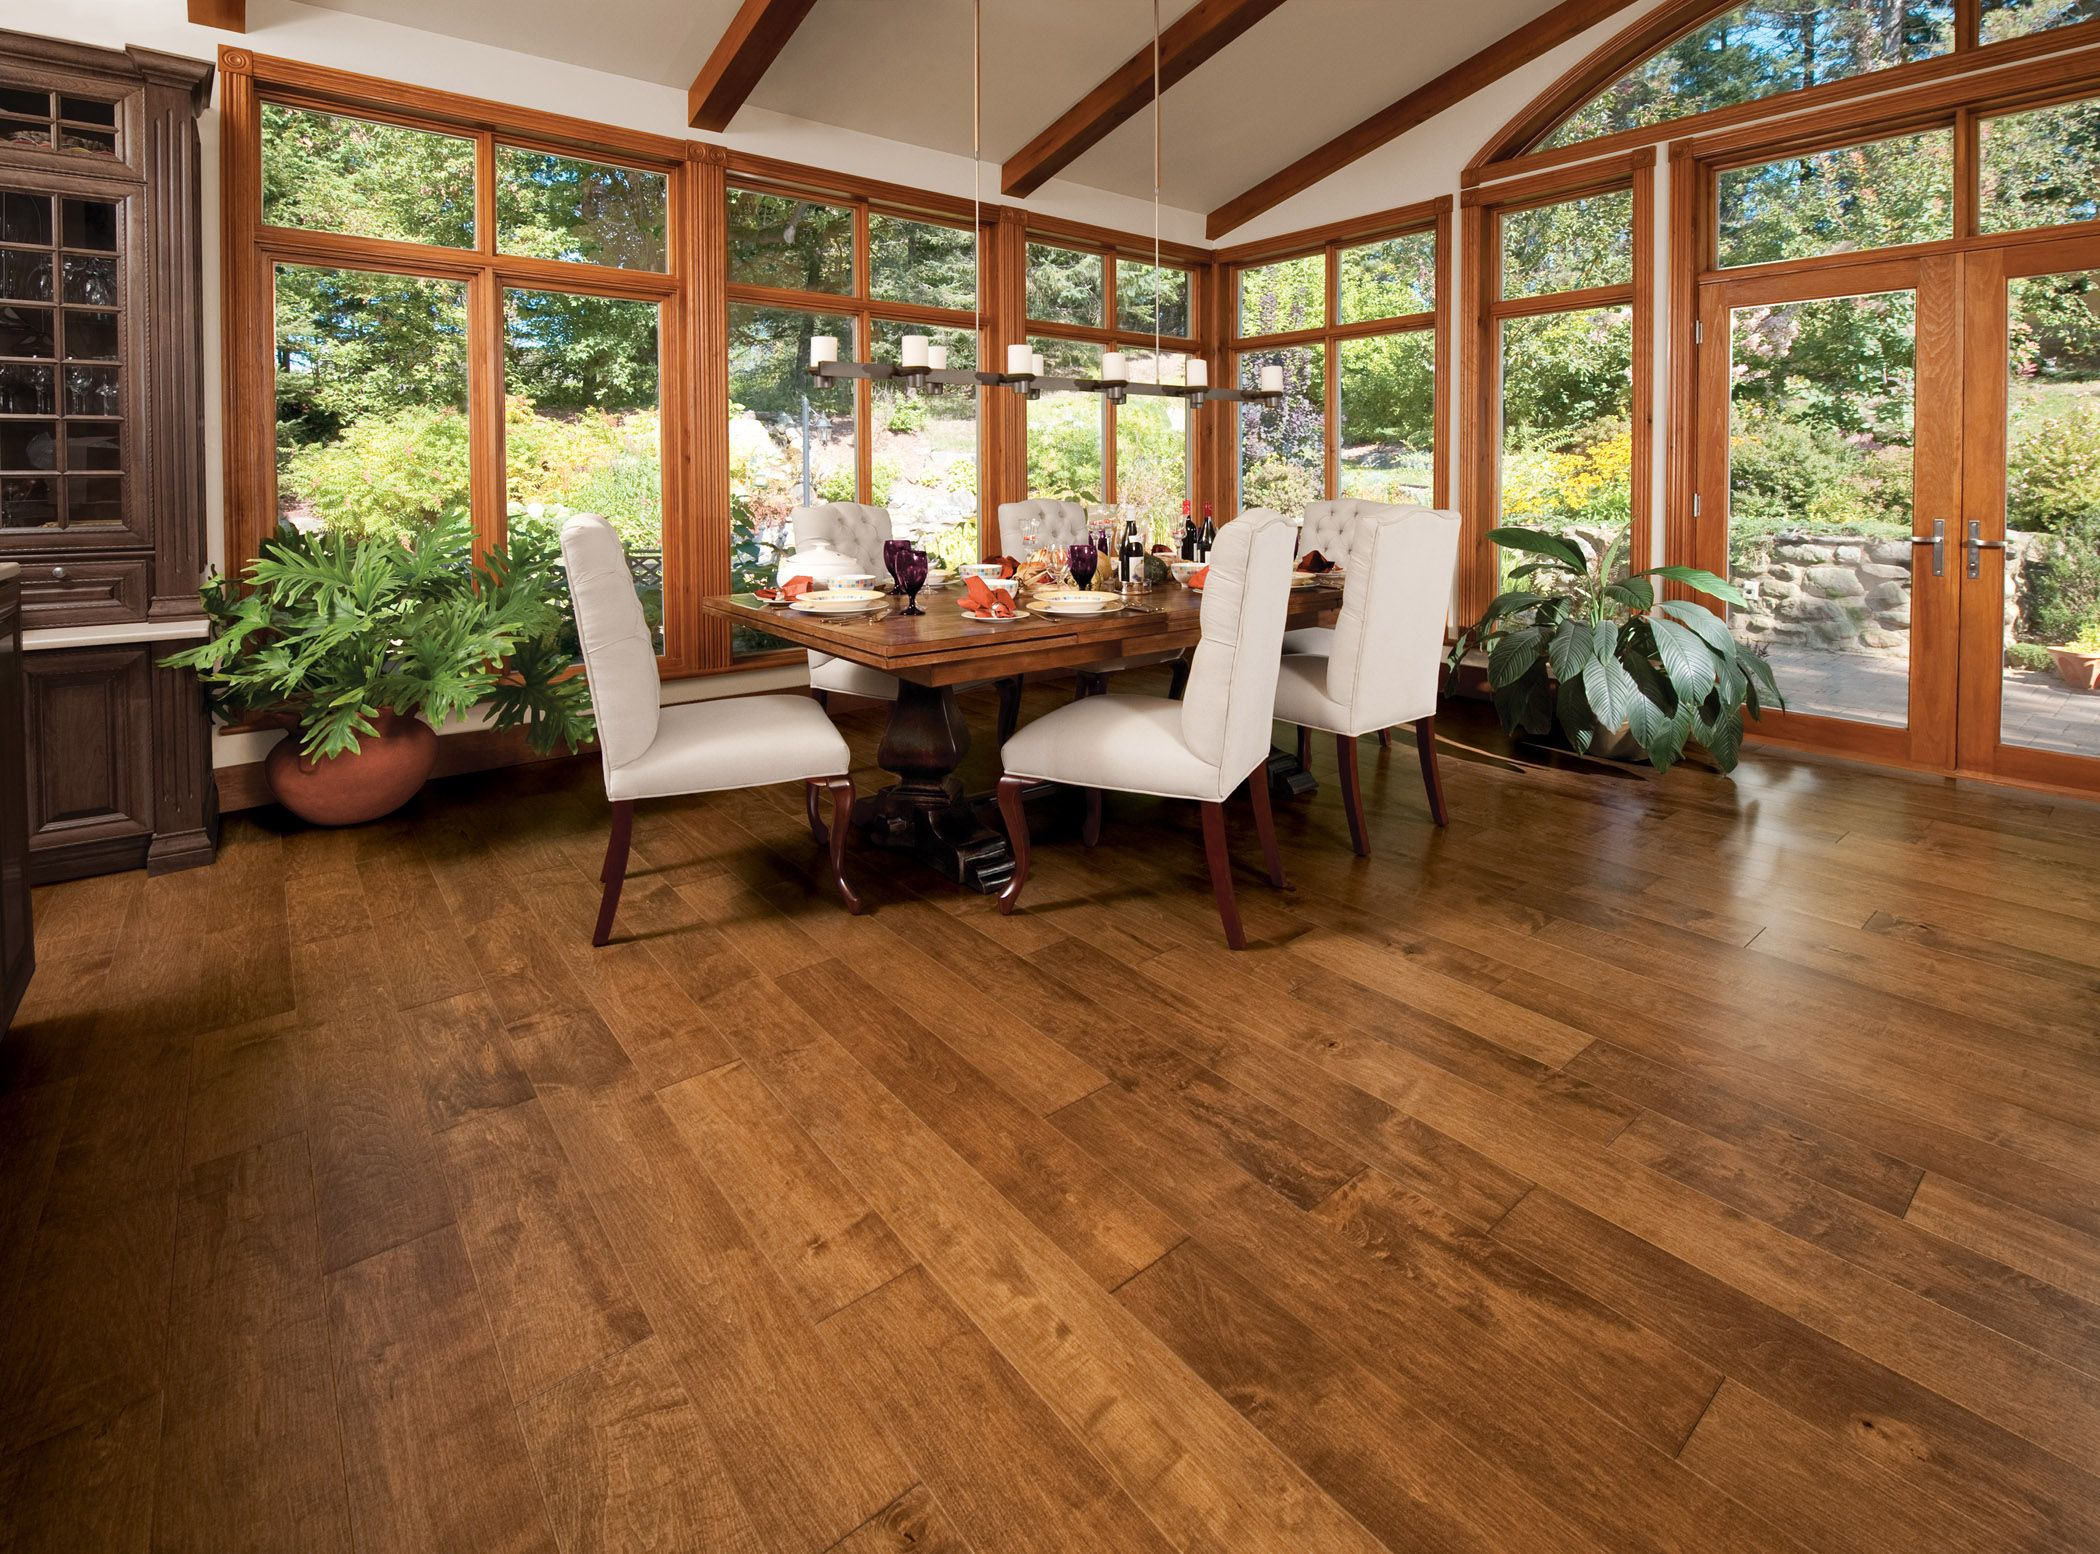 mirage engineered flooring hardwood flooring mirage engineered floors in aged maple praline love the color not too dark or light smooth matte finish looks like 5 2100 1554